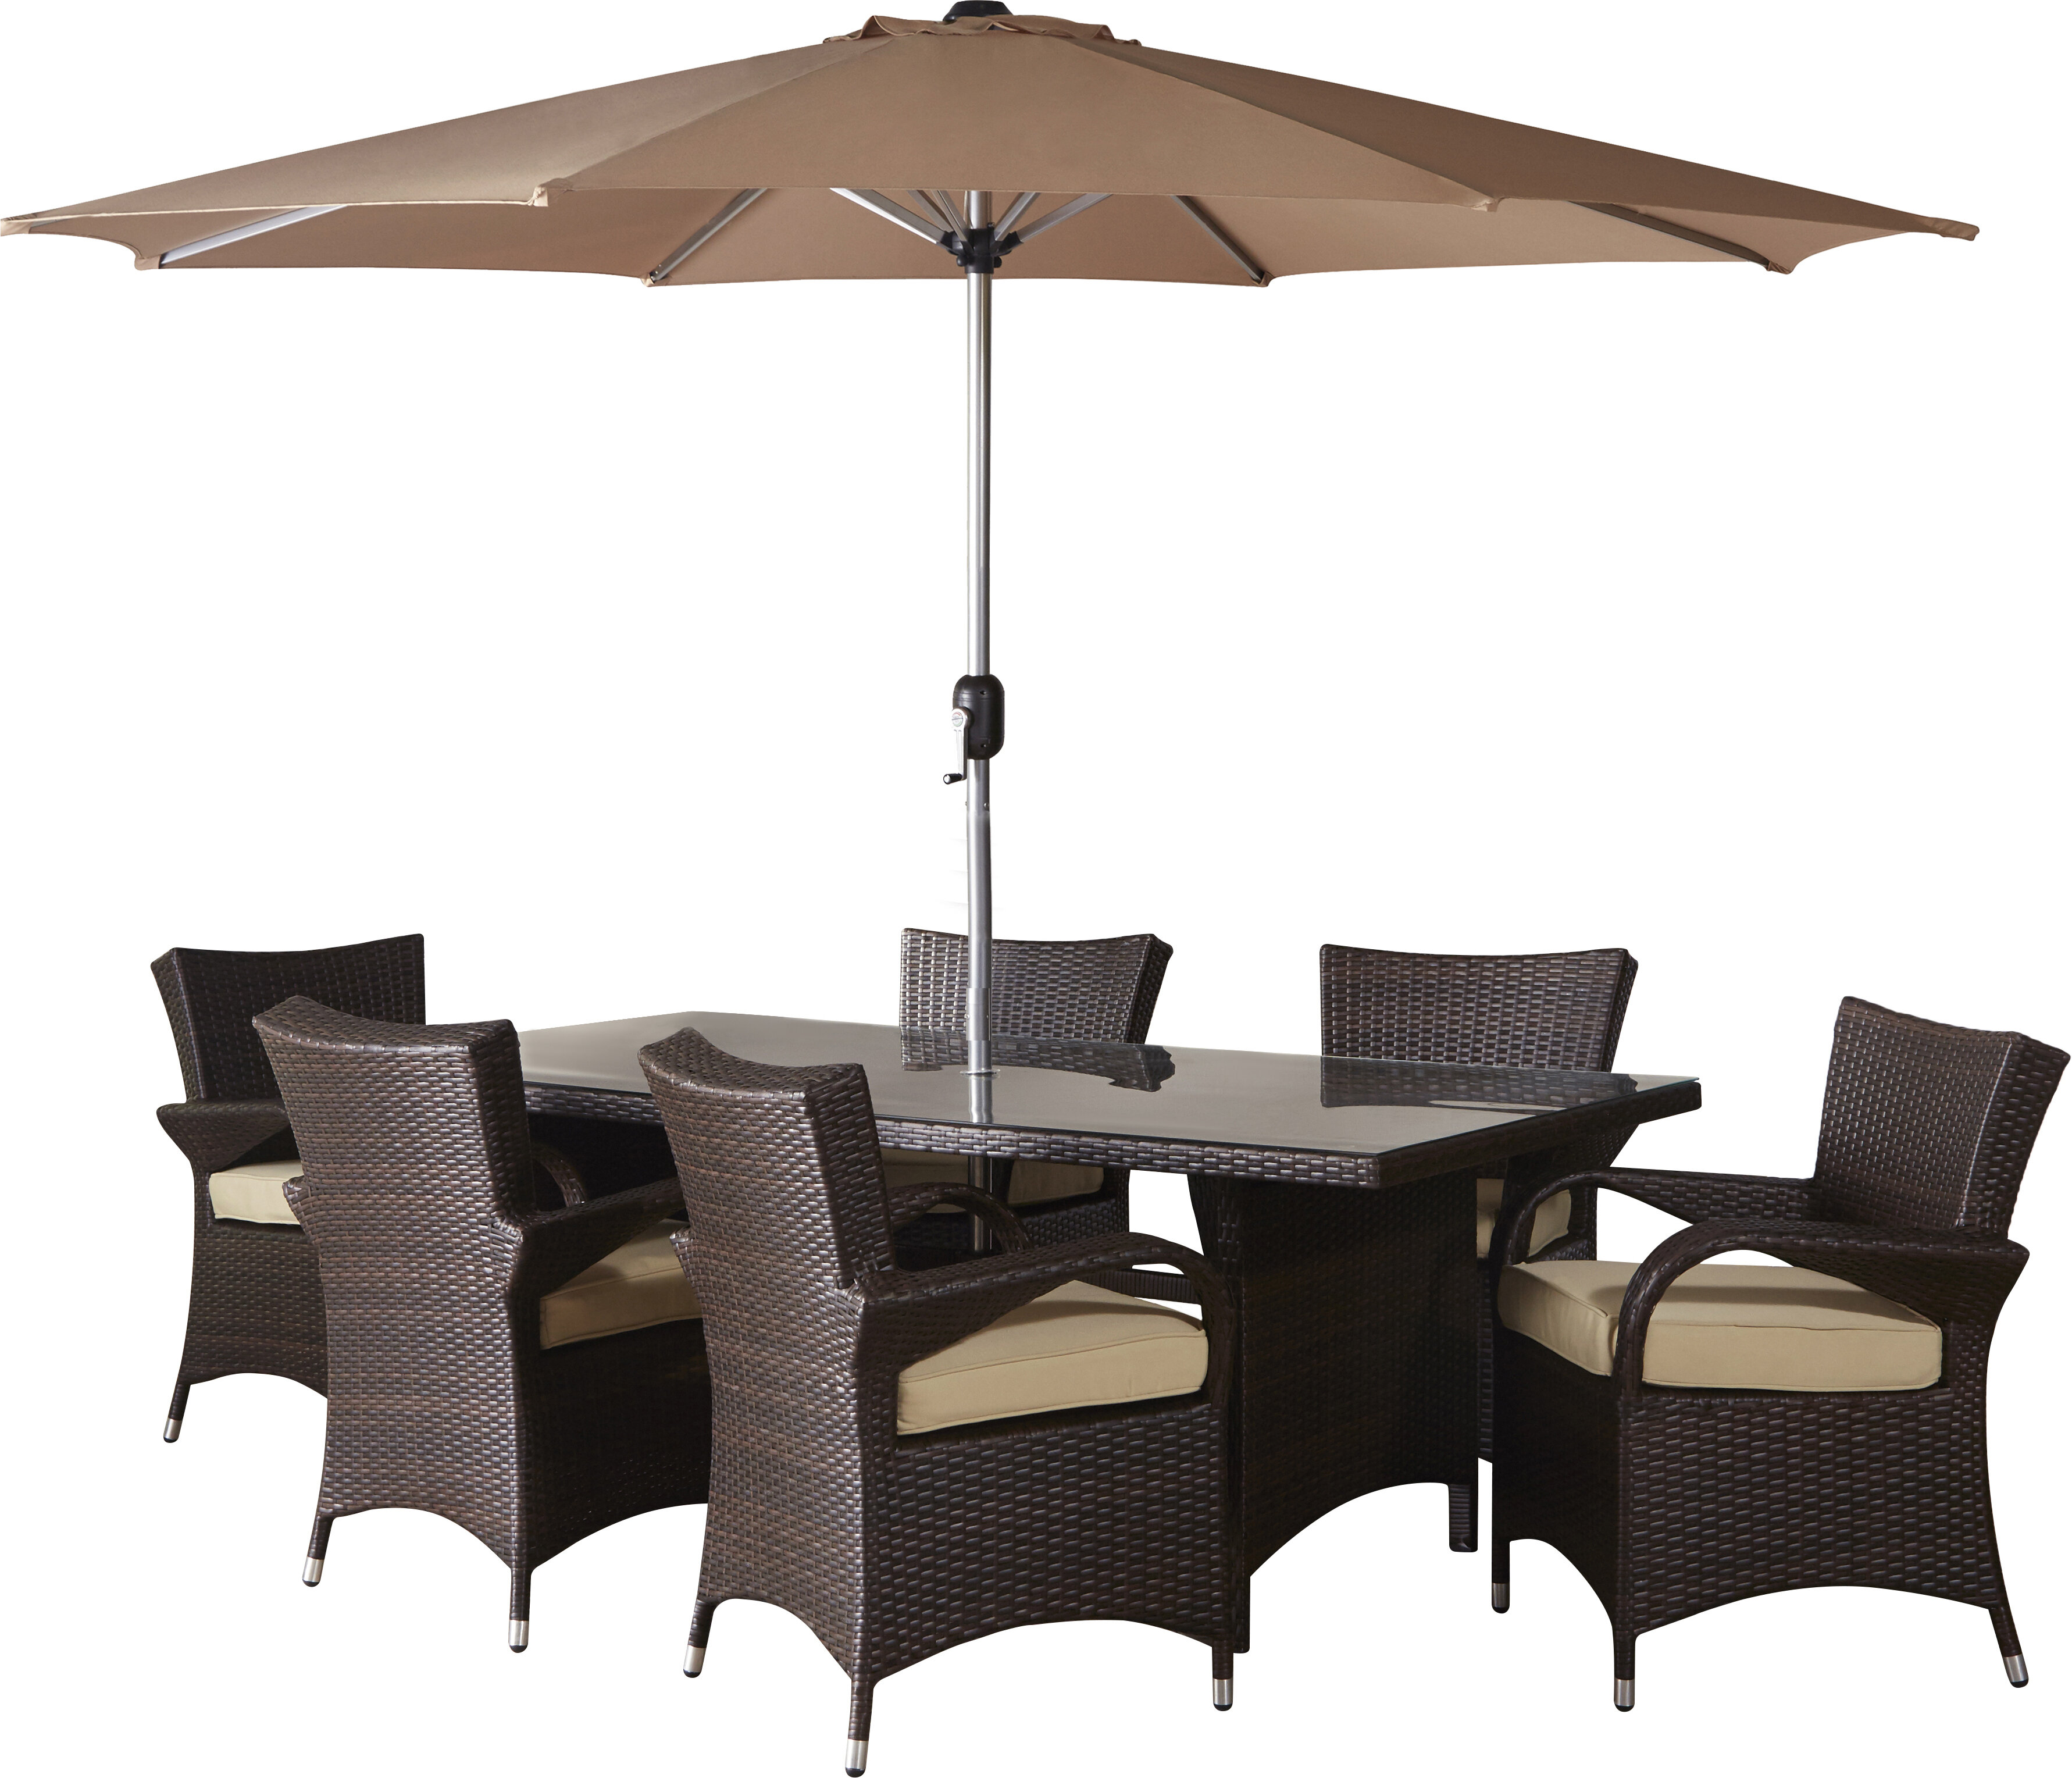 Unique Patio Table and Chairs with Umbrella